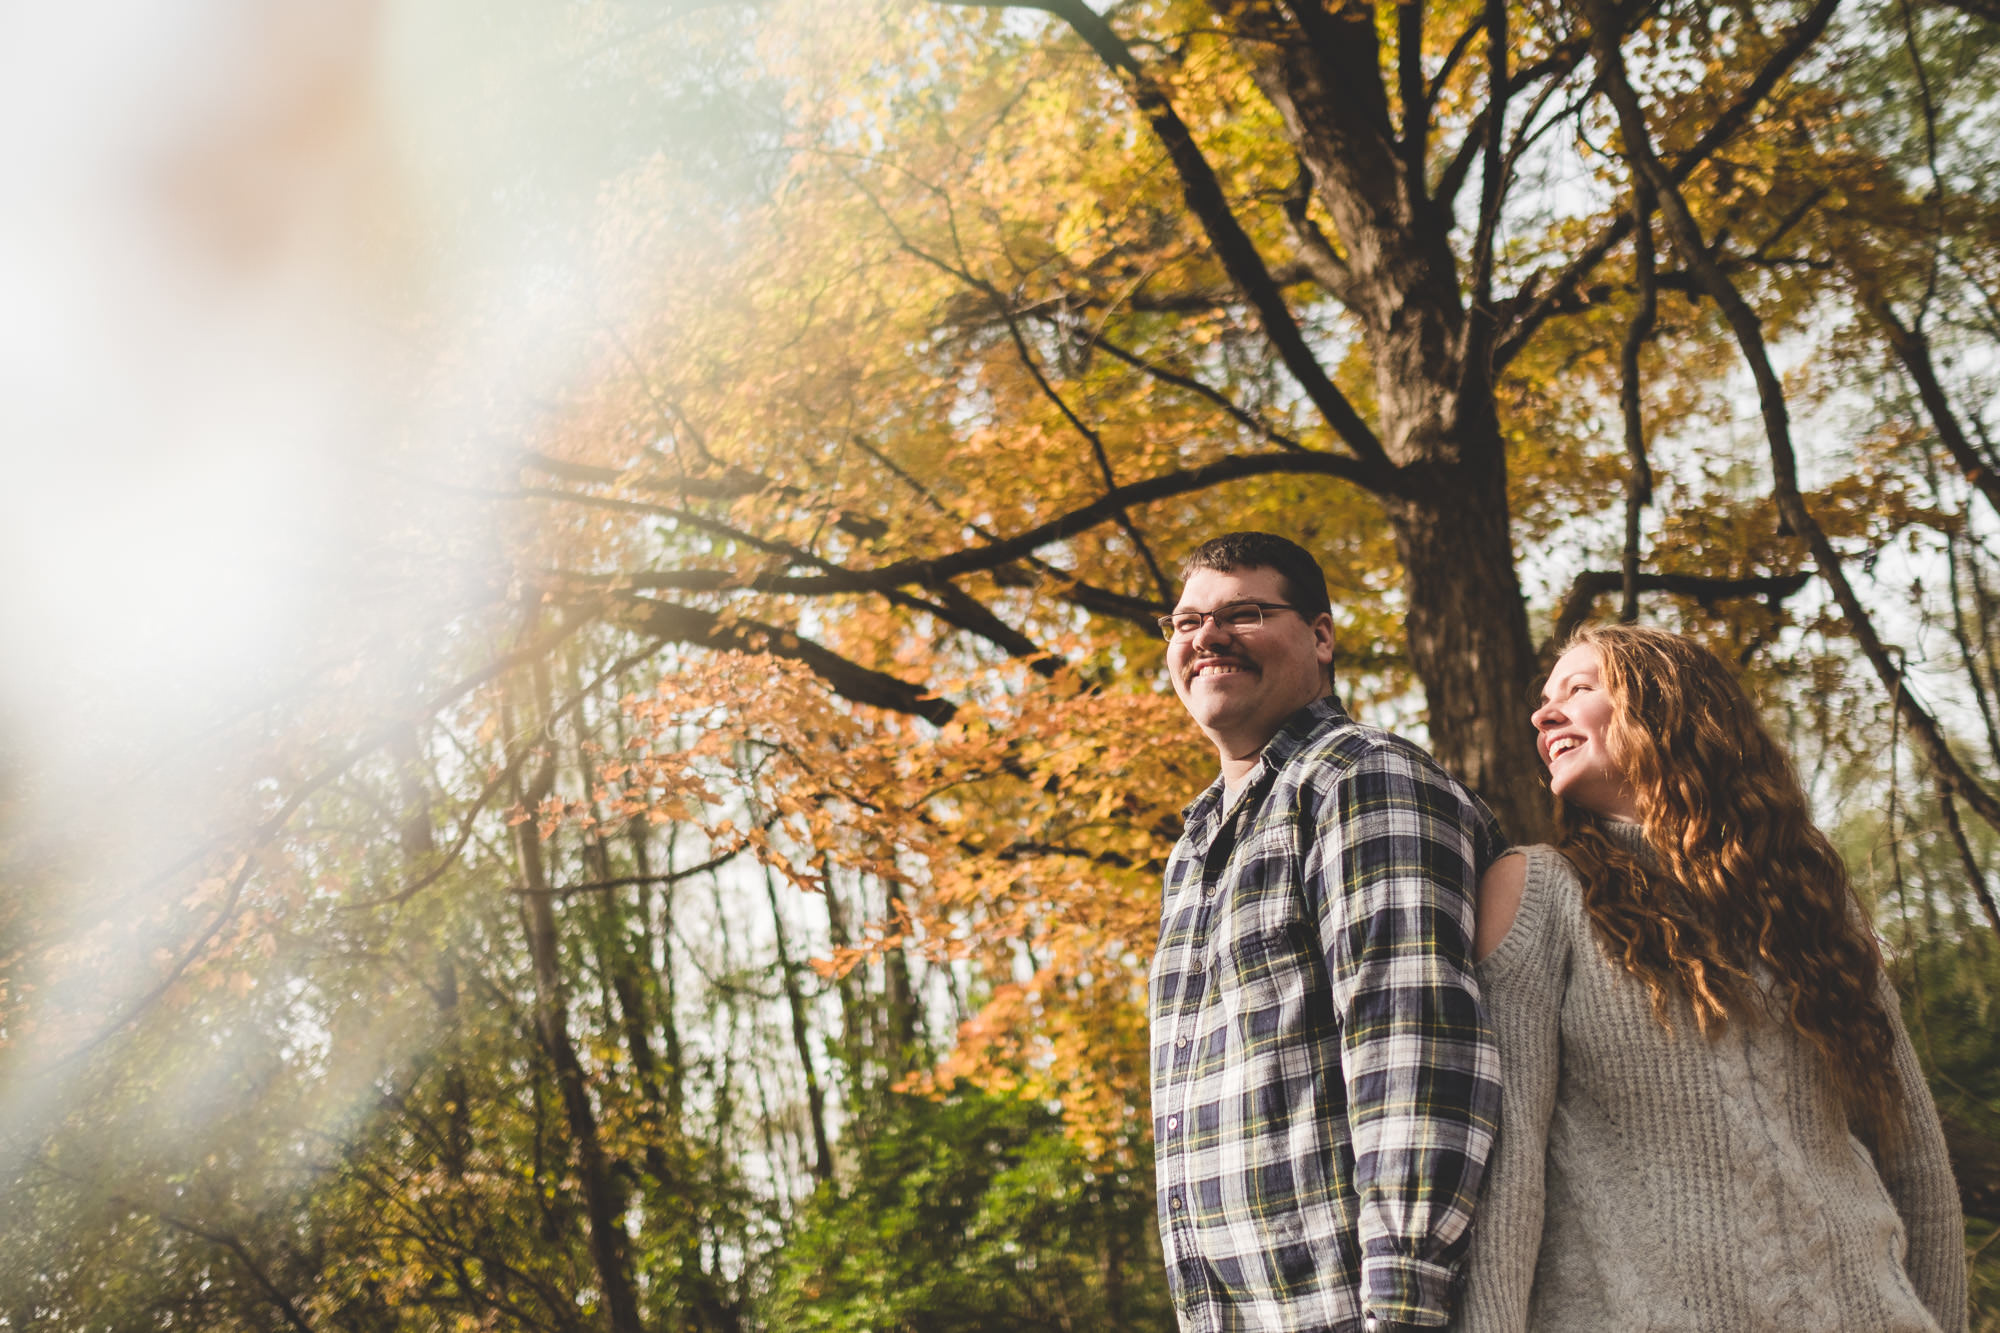 artistic-nature-engagement-photos-fall-leaves